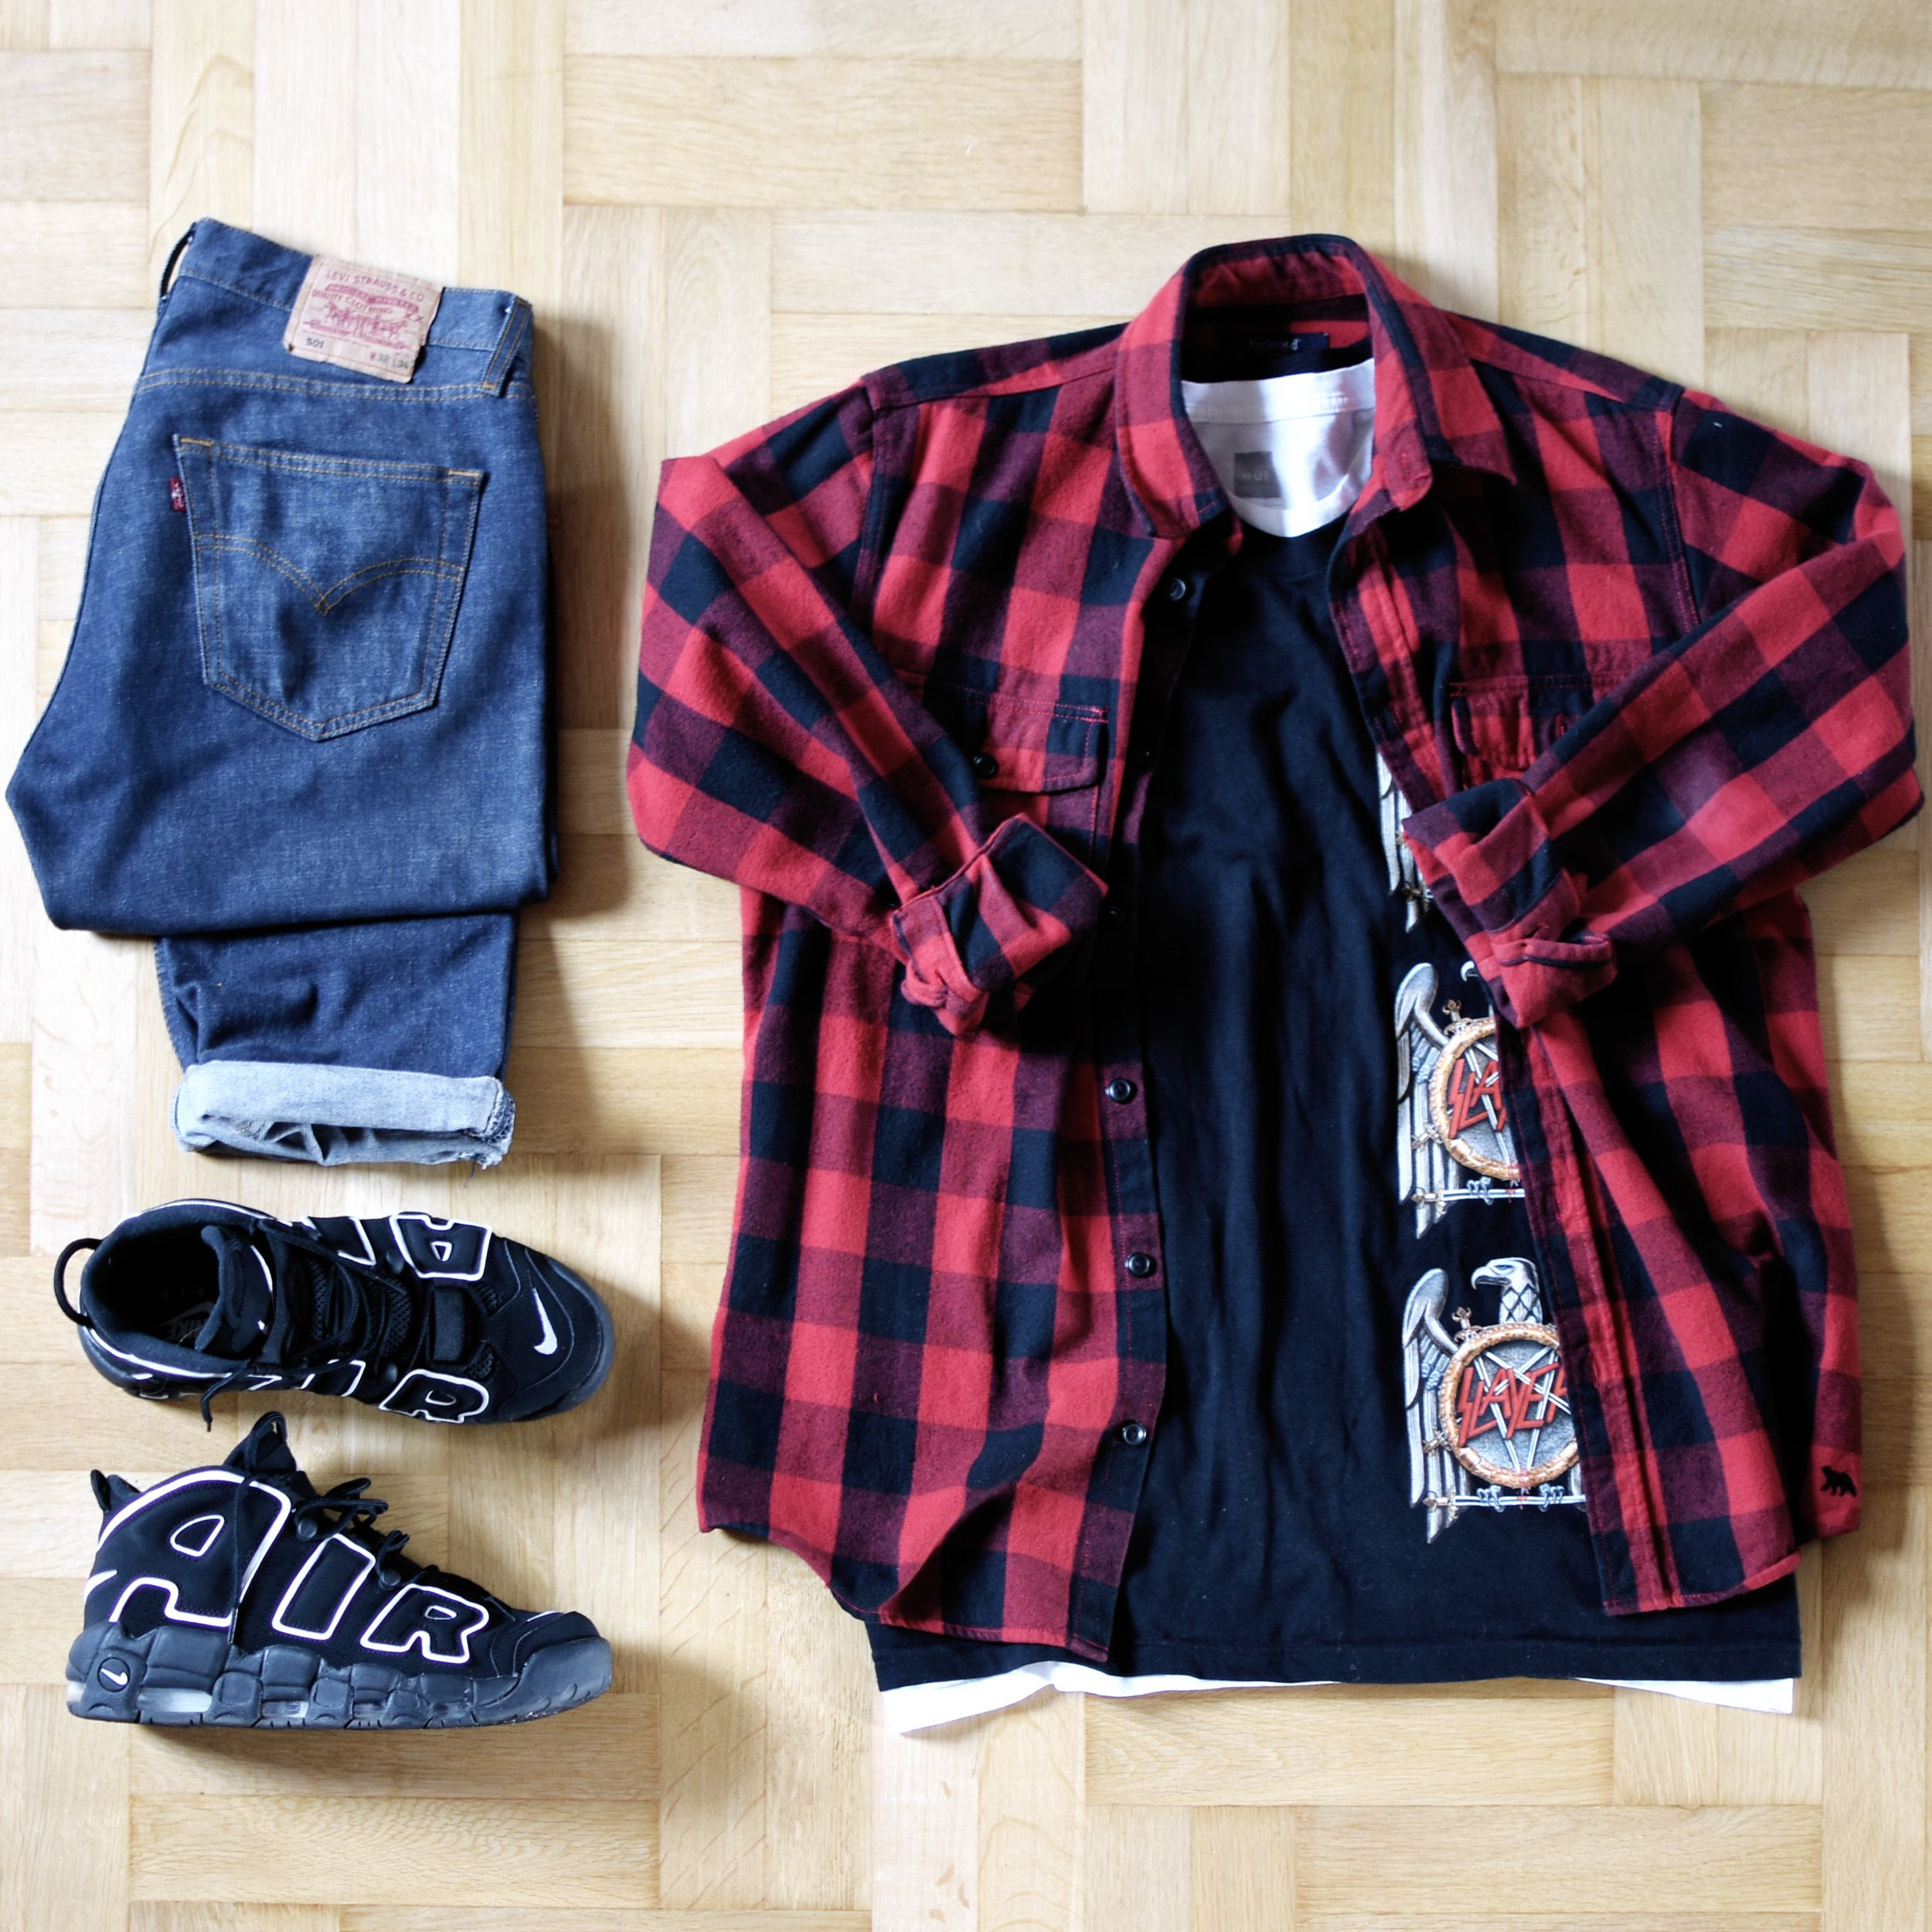 Outfitgrid - Levis Jeans / Kappahl Shirt / Supreme X Slayer Tee / Nike Air More Uptempo Shoes ...